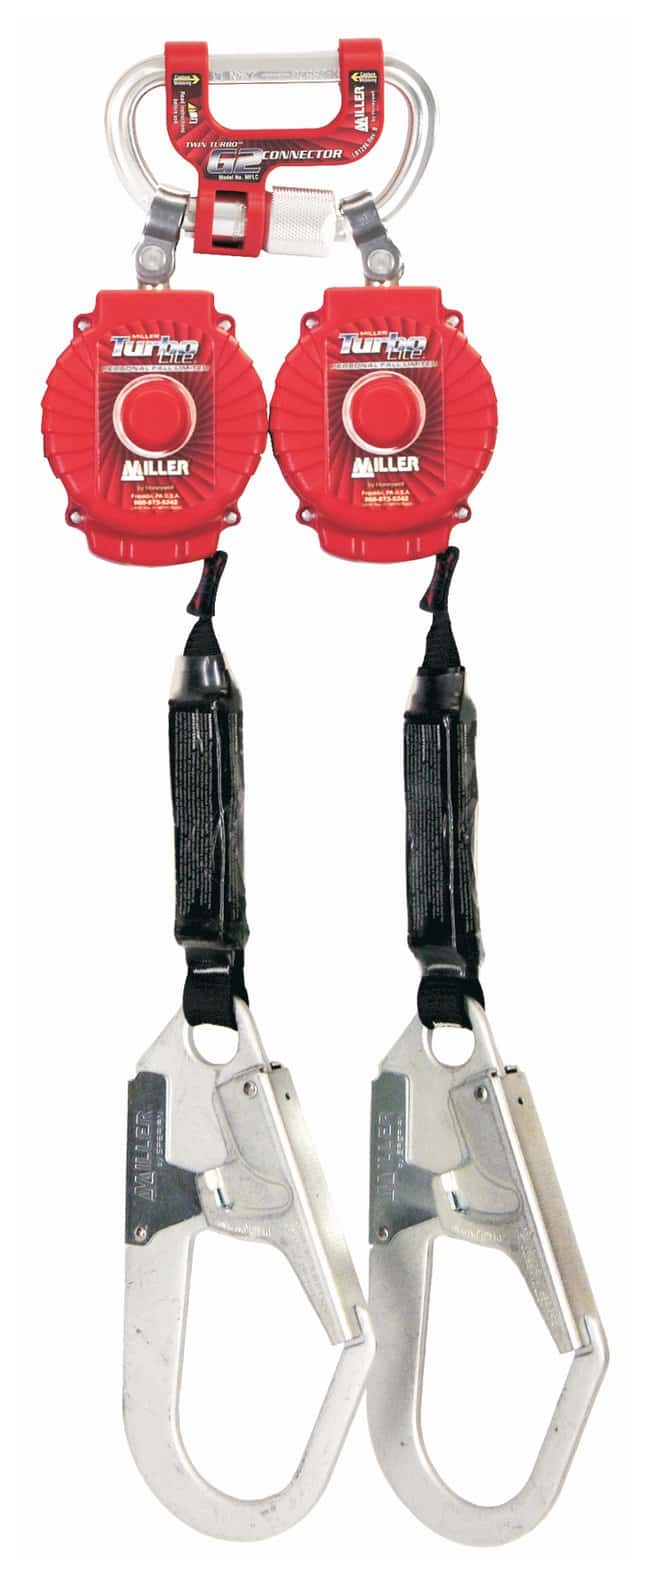 Honeywell Miller Twin Turbo Fall Protection System with Twin Turbo G2 Connector